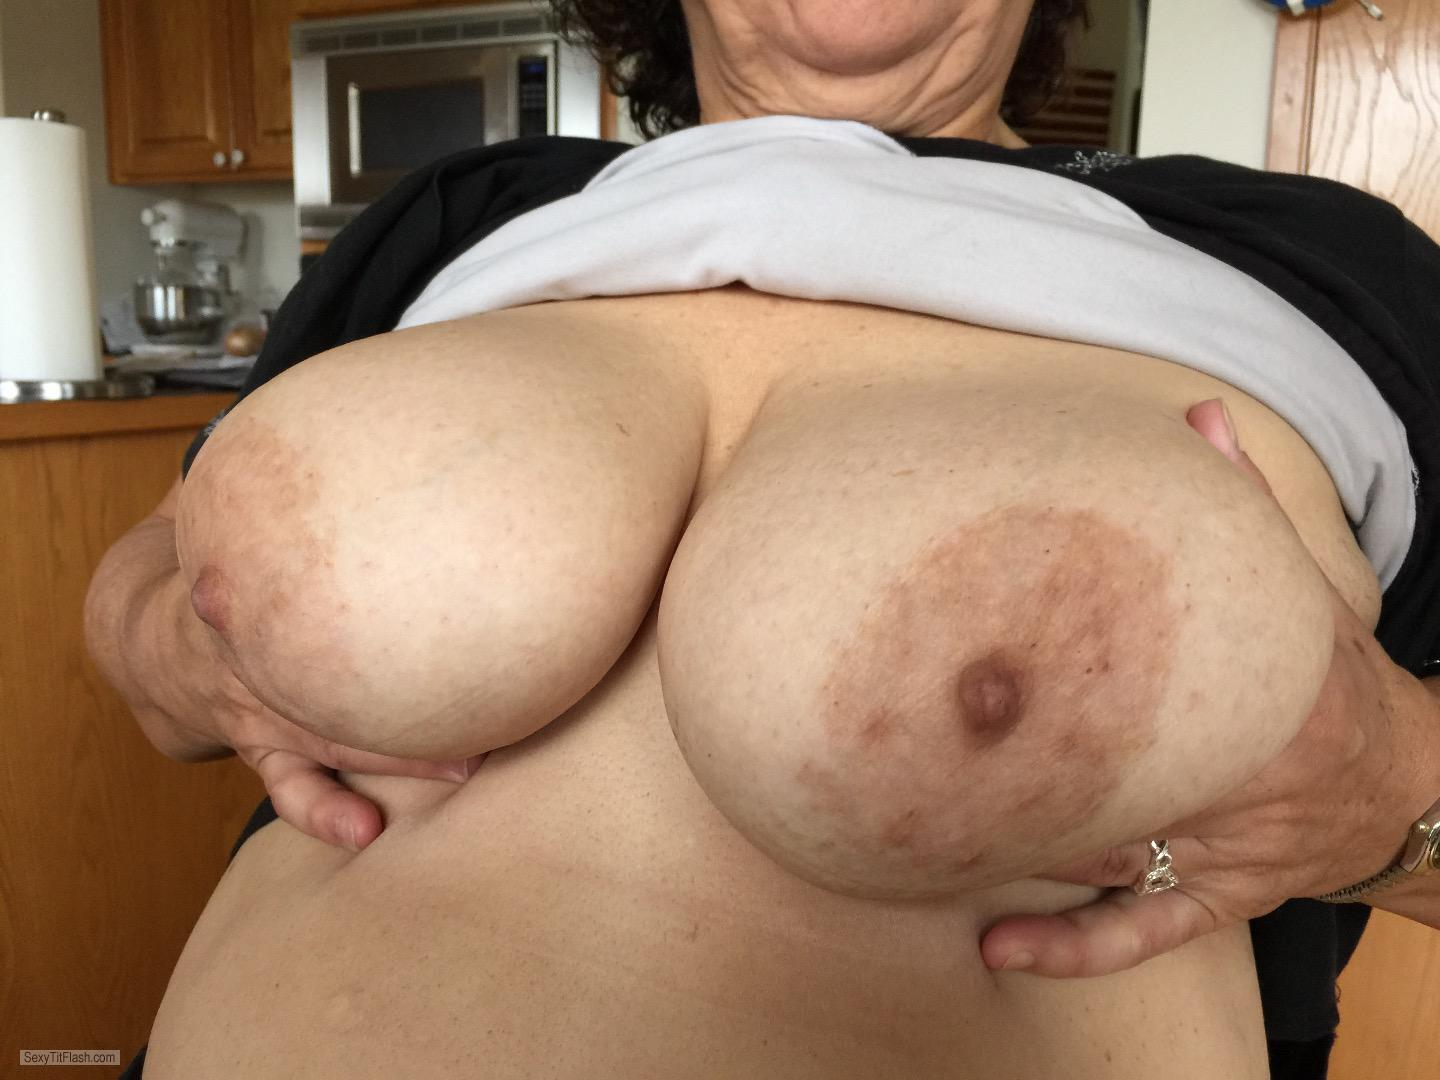 Tit Flash: My Very Big Tits - Hot Wife from United States